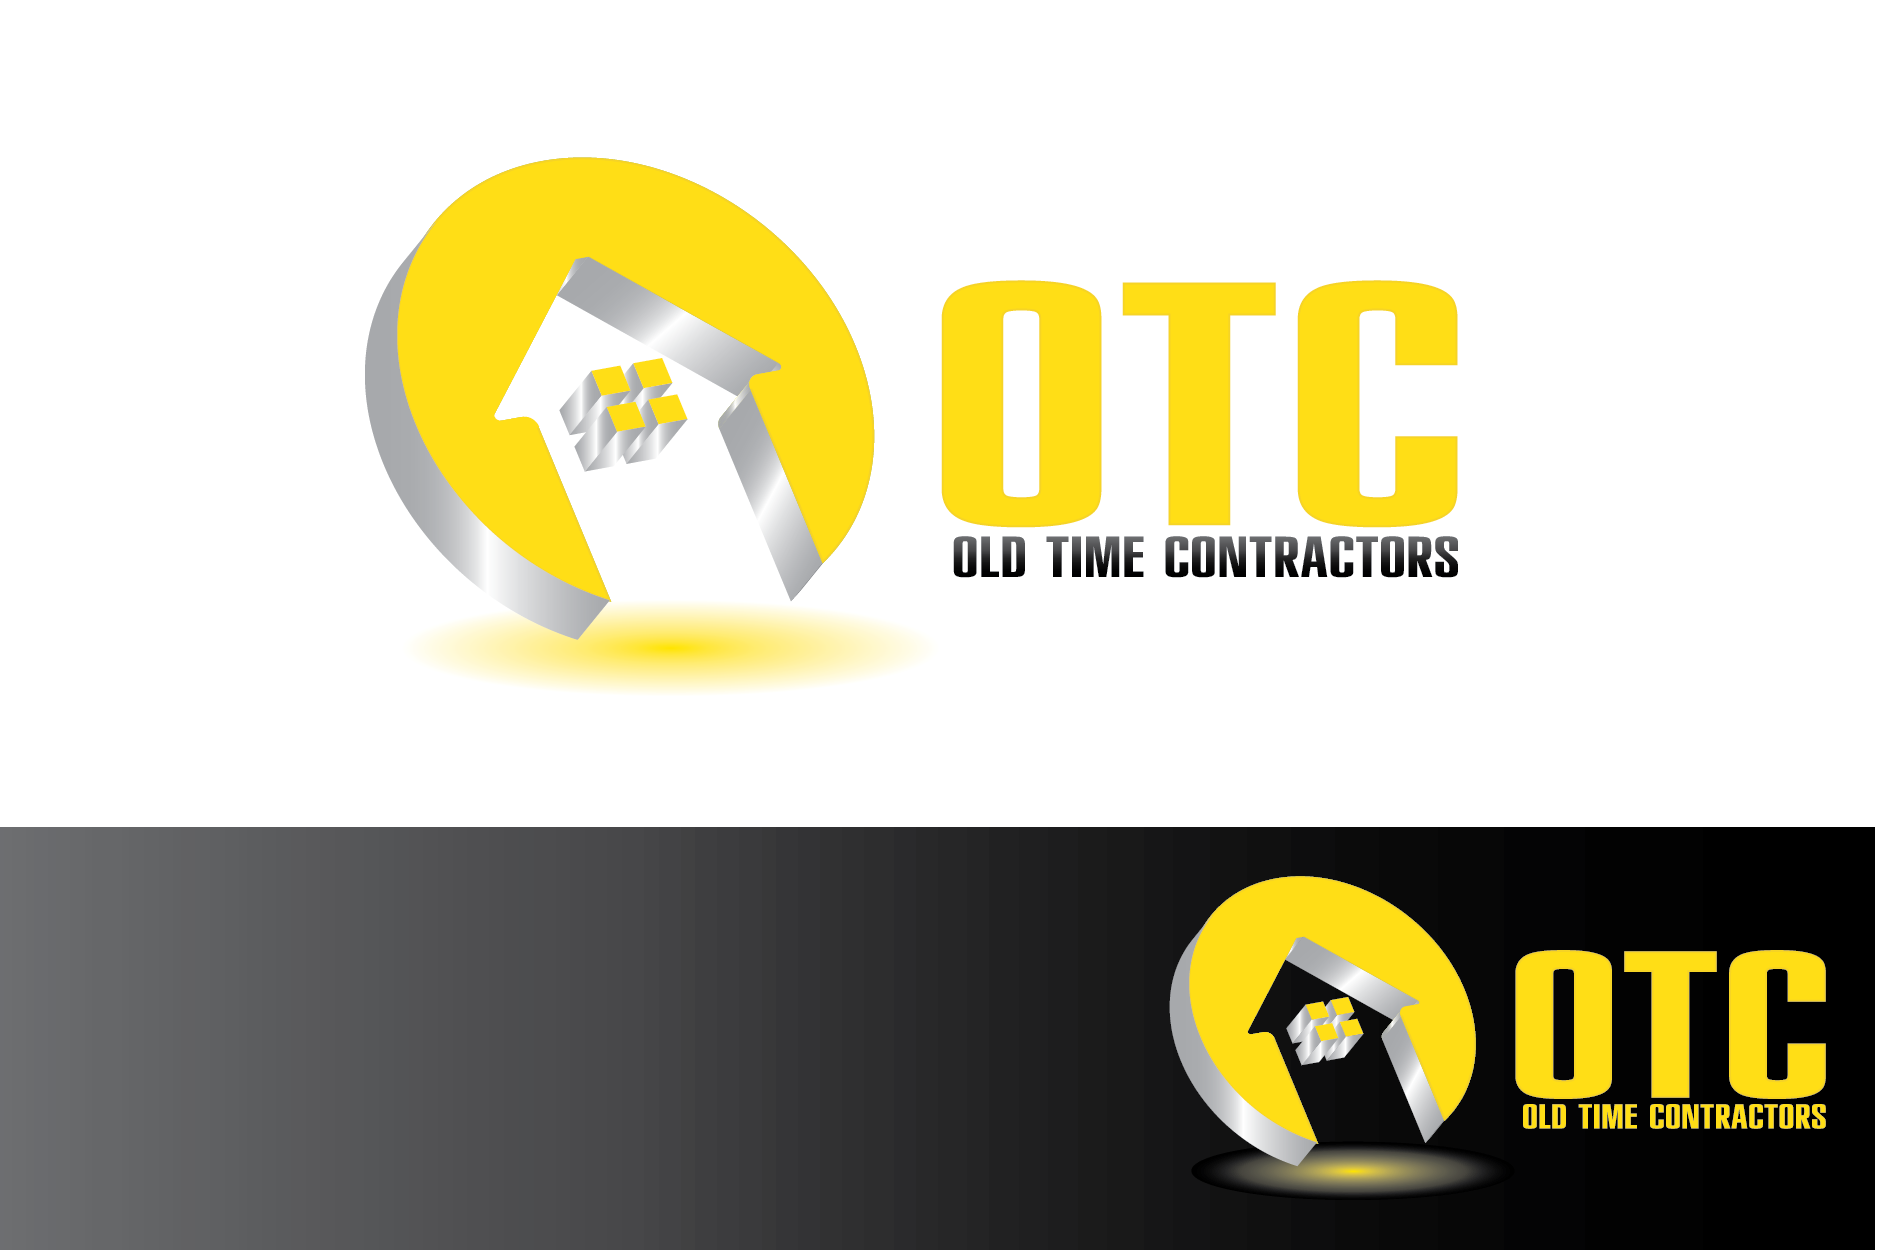 Logo Design by Moin Javed - Entry No. 98 in the Logo Design Contest Old Time Contractors, Inc. (new brand:  OTC, Inc.) Logo Design.